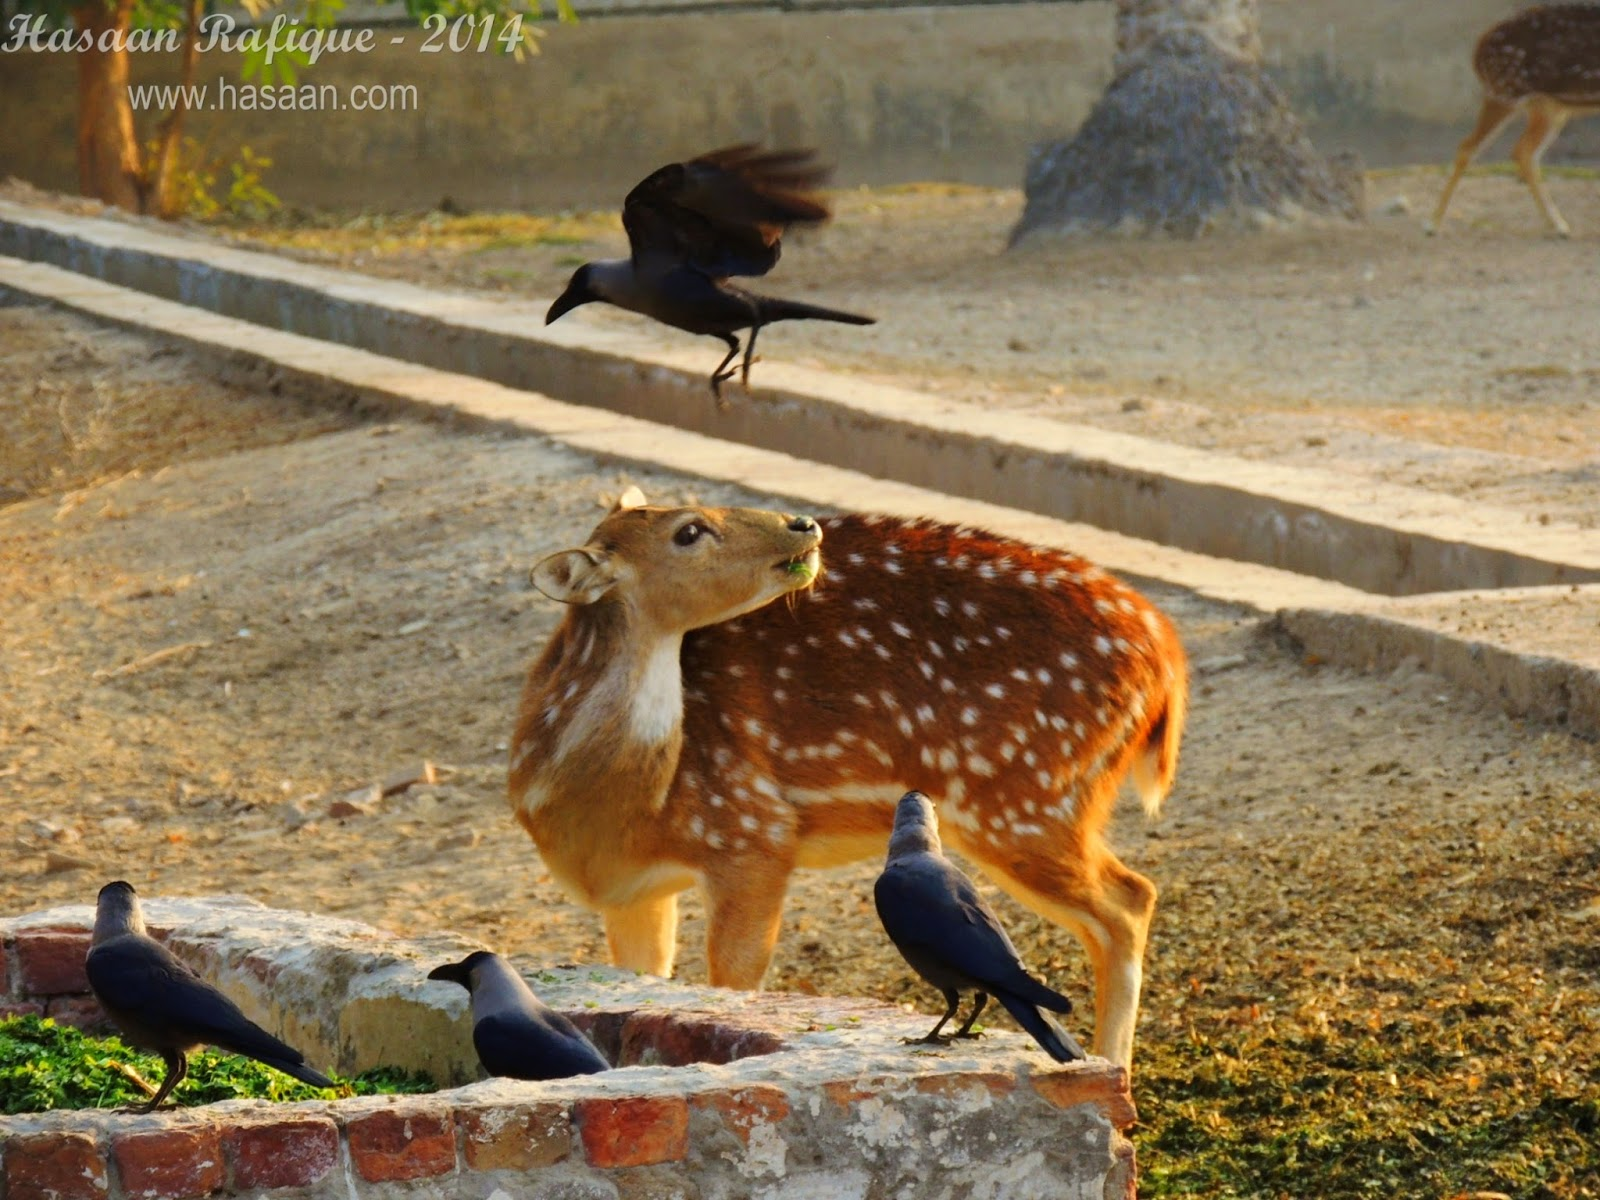 An interesting shot of some crows with a deer.